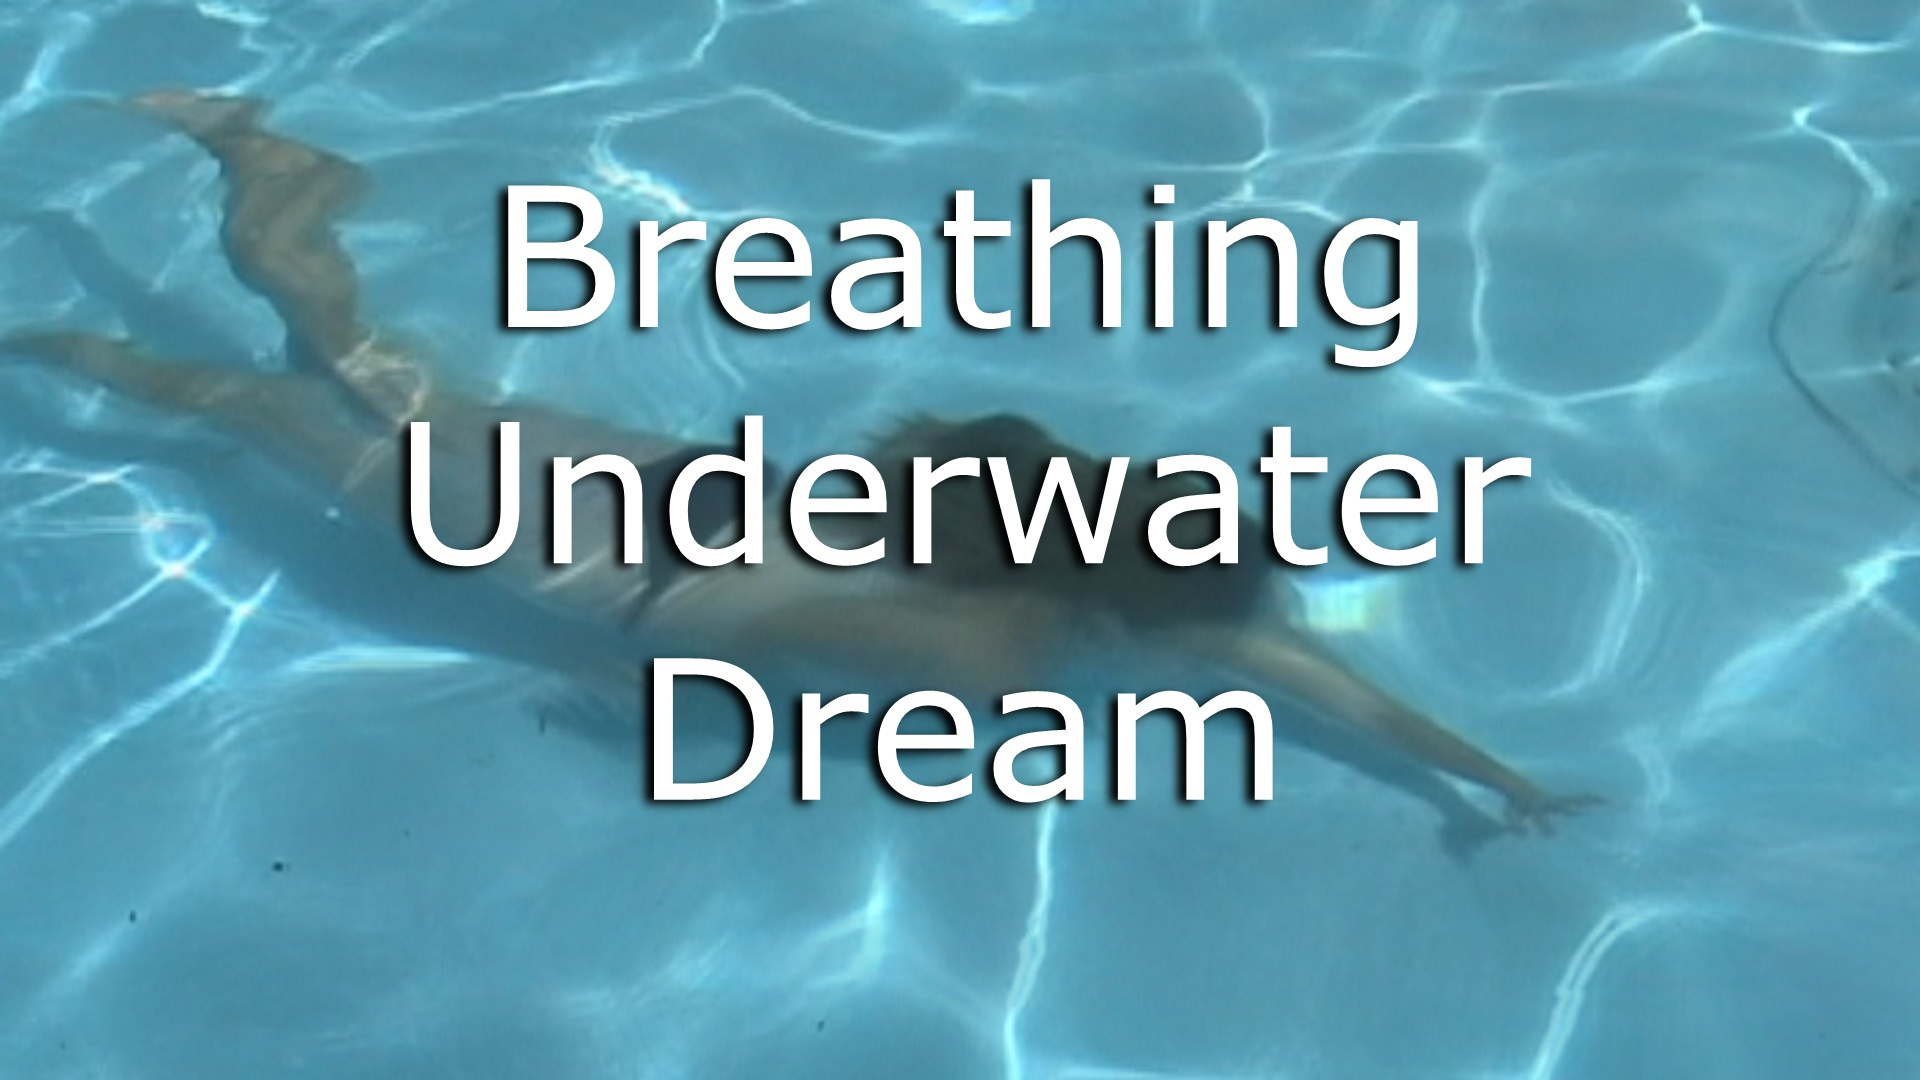 When You Dream of Breathing Underwater